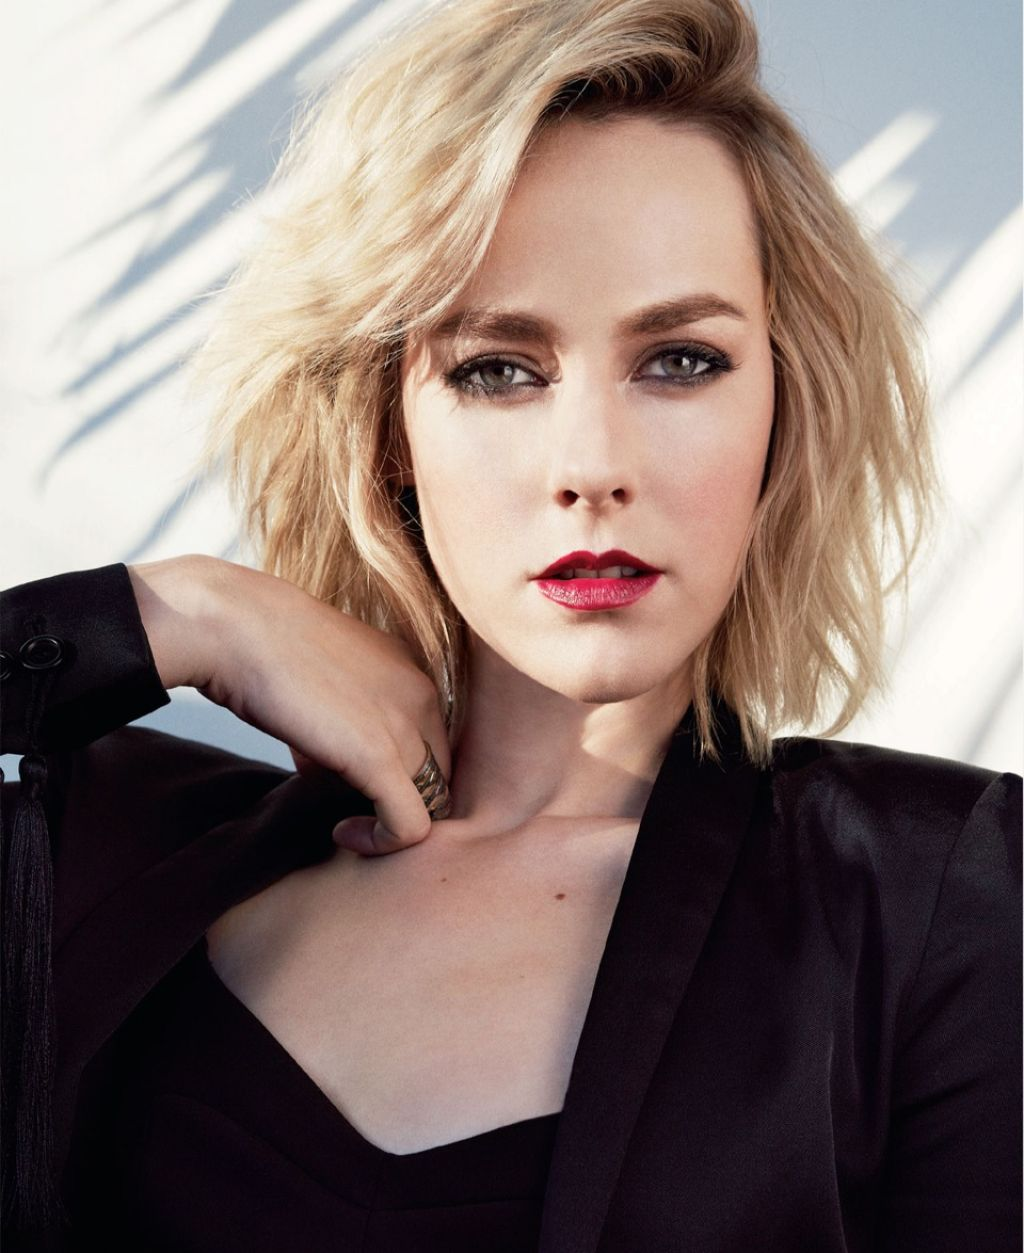 Jena Malone - FOAM Magazine - February 2014 Issue